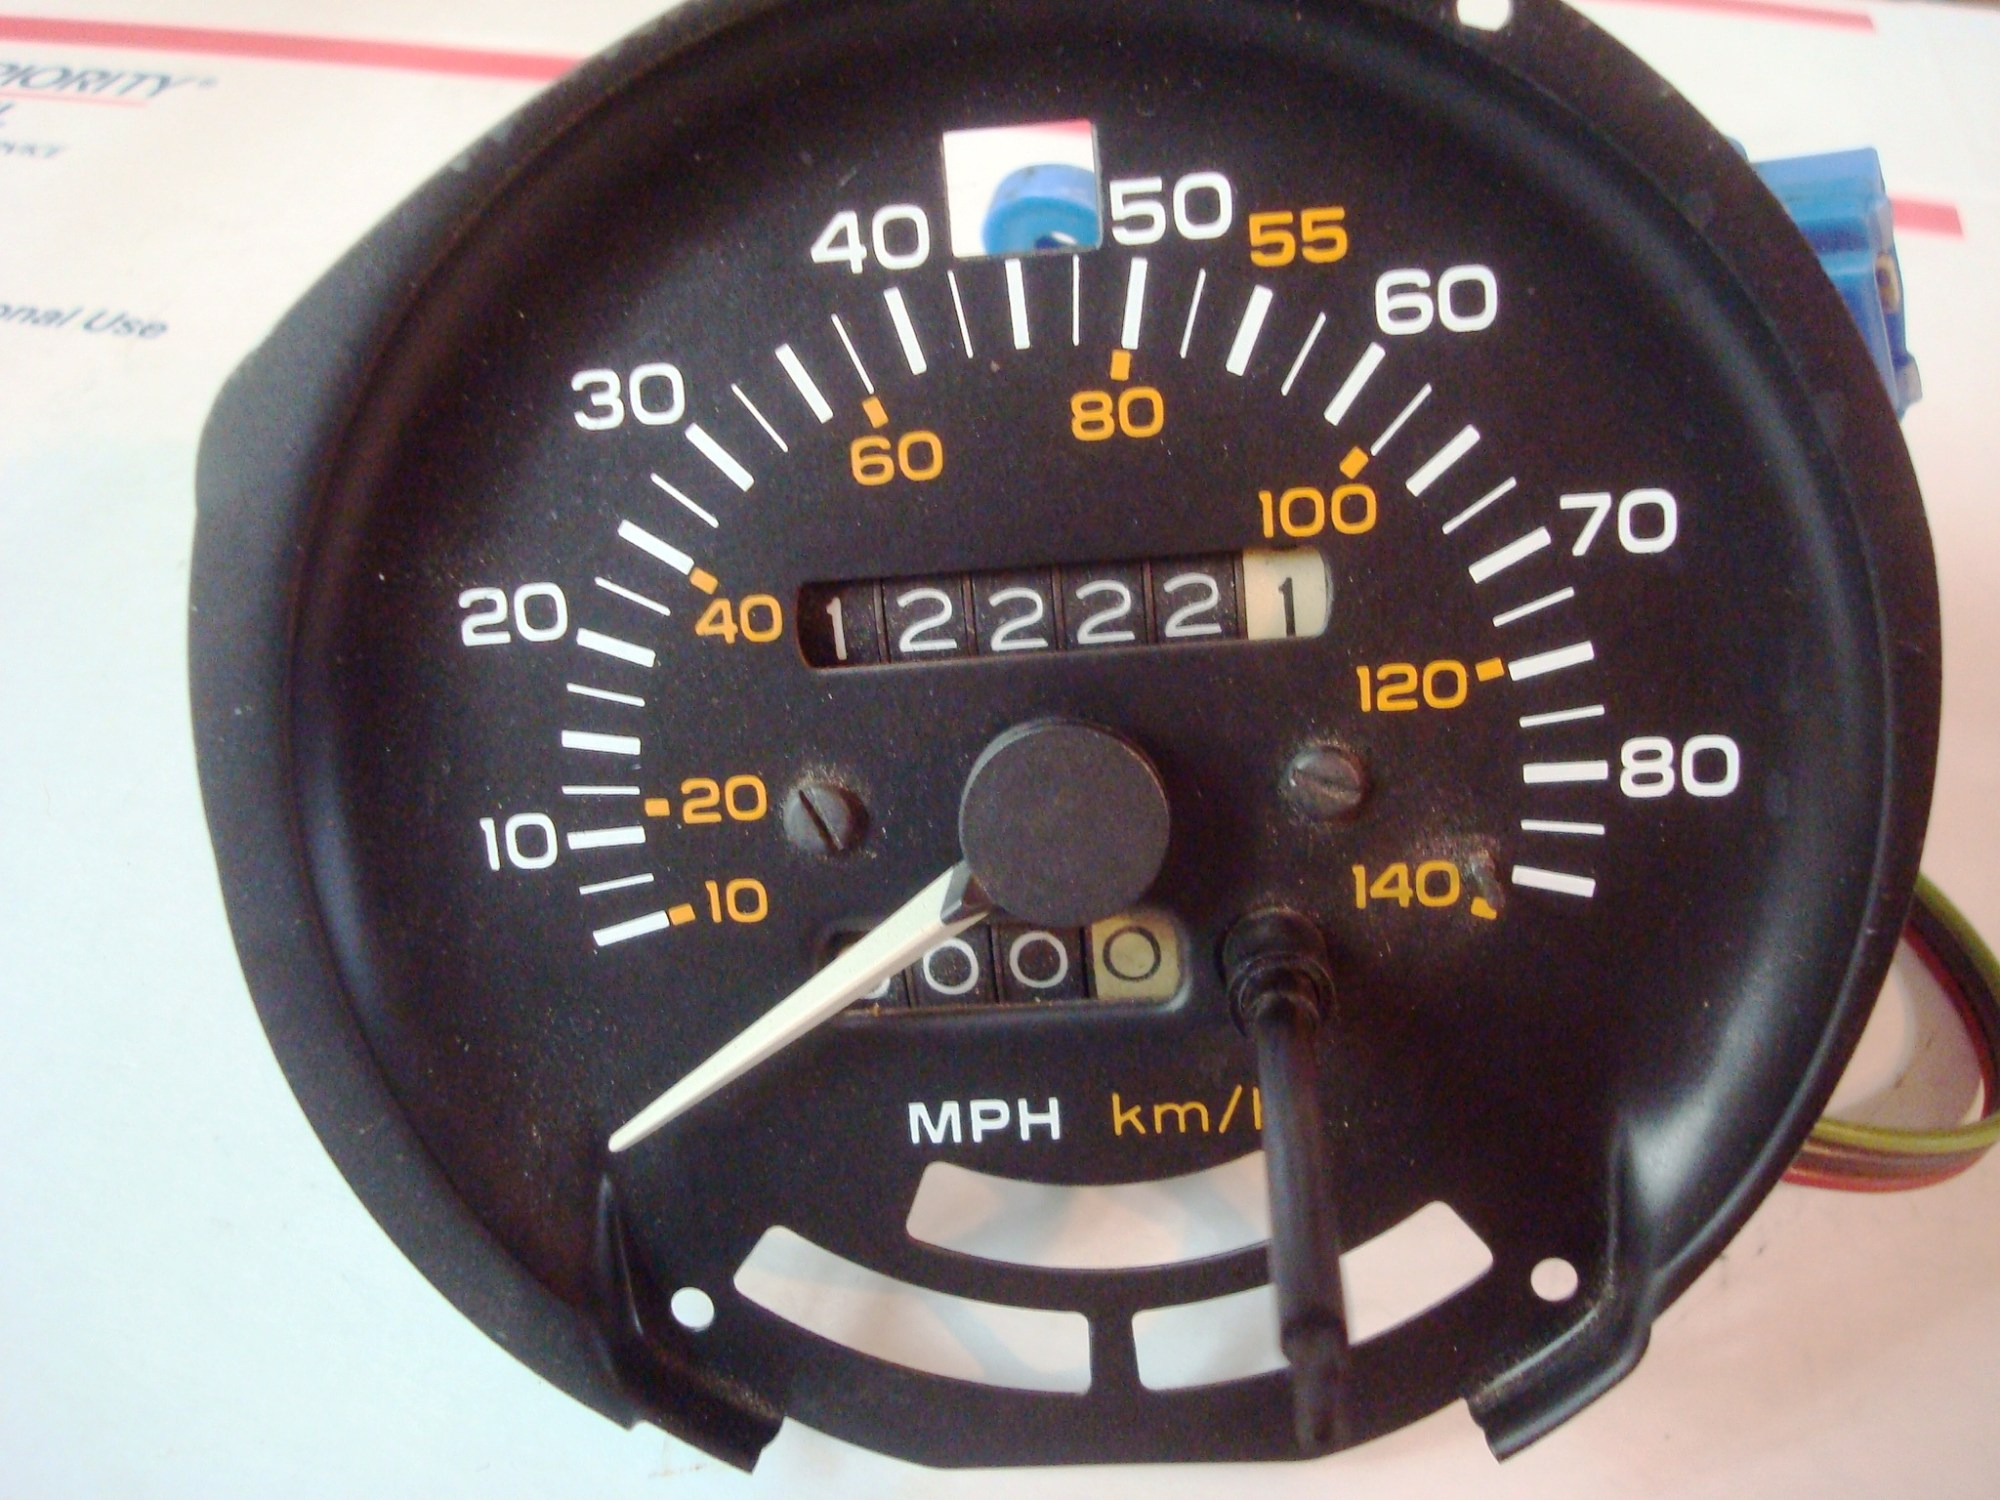 hight resolution of firebird trans am formula 1981 80 mph speedometer